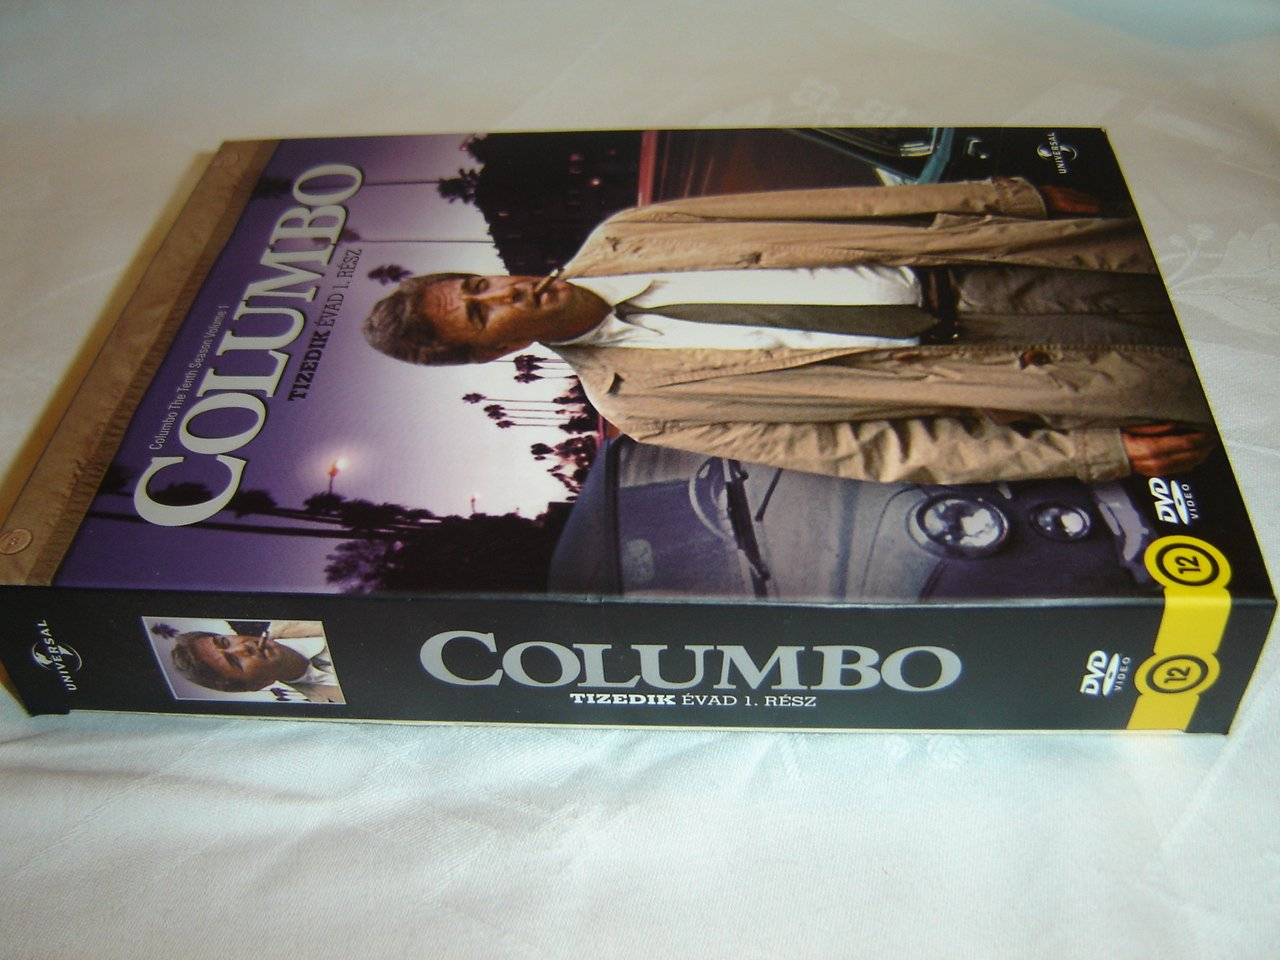 Amazon.com  Columbo The Tenth Season Volume 1 (4 DVD Set) Columbo - Tizedik  évad 1. rész   Audio  English ea318f9d62